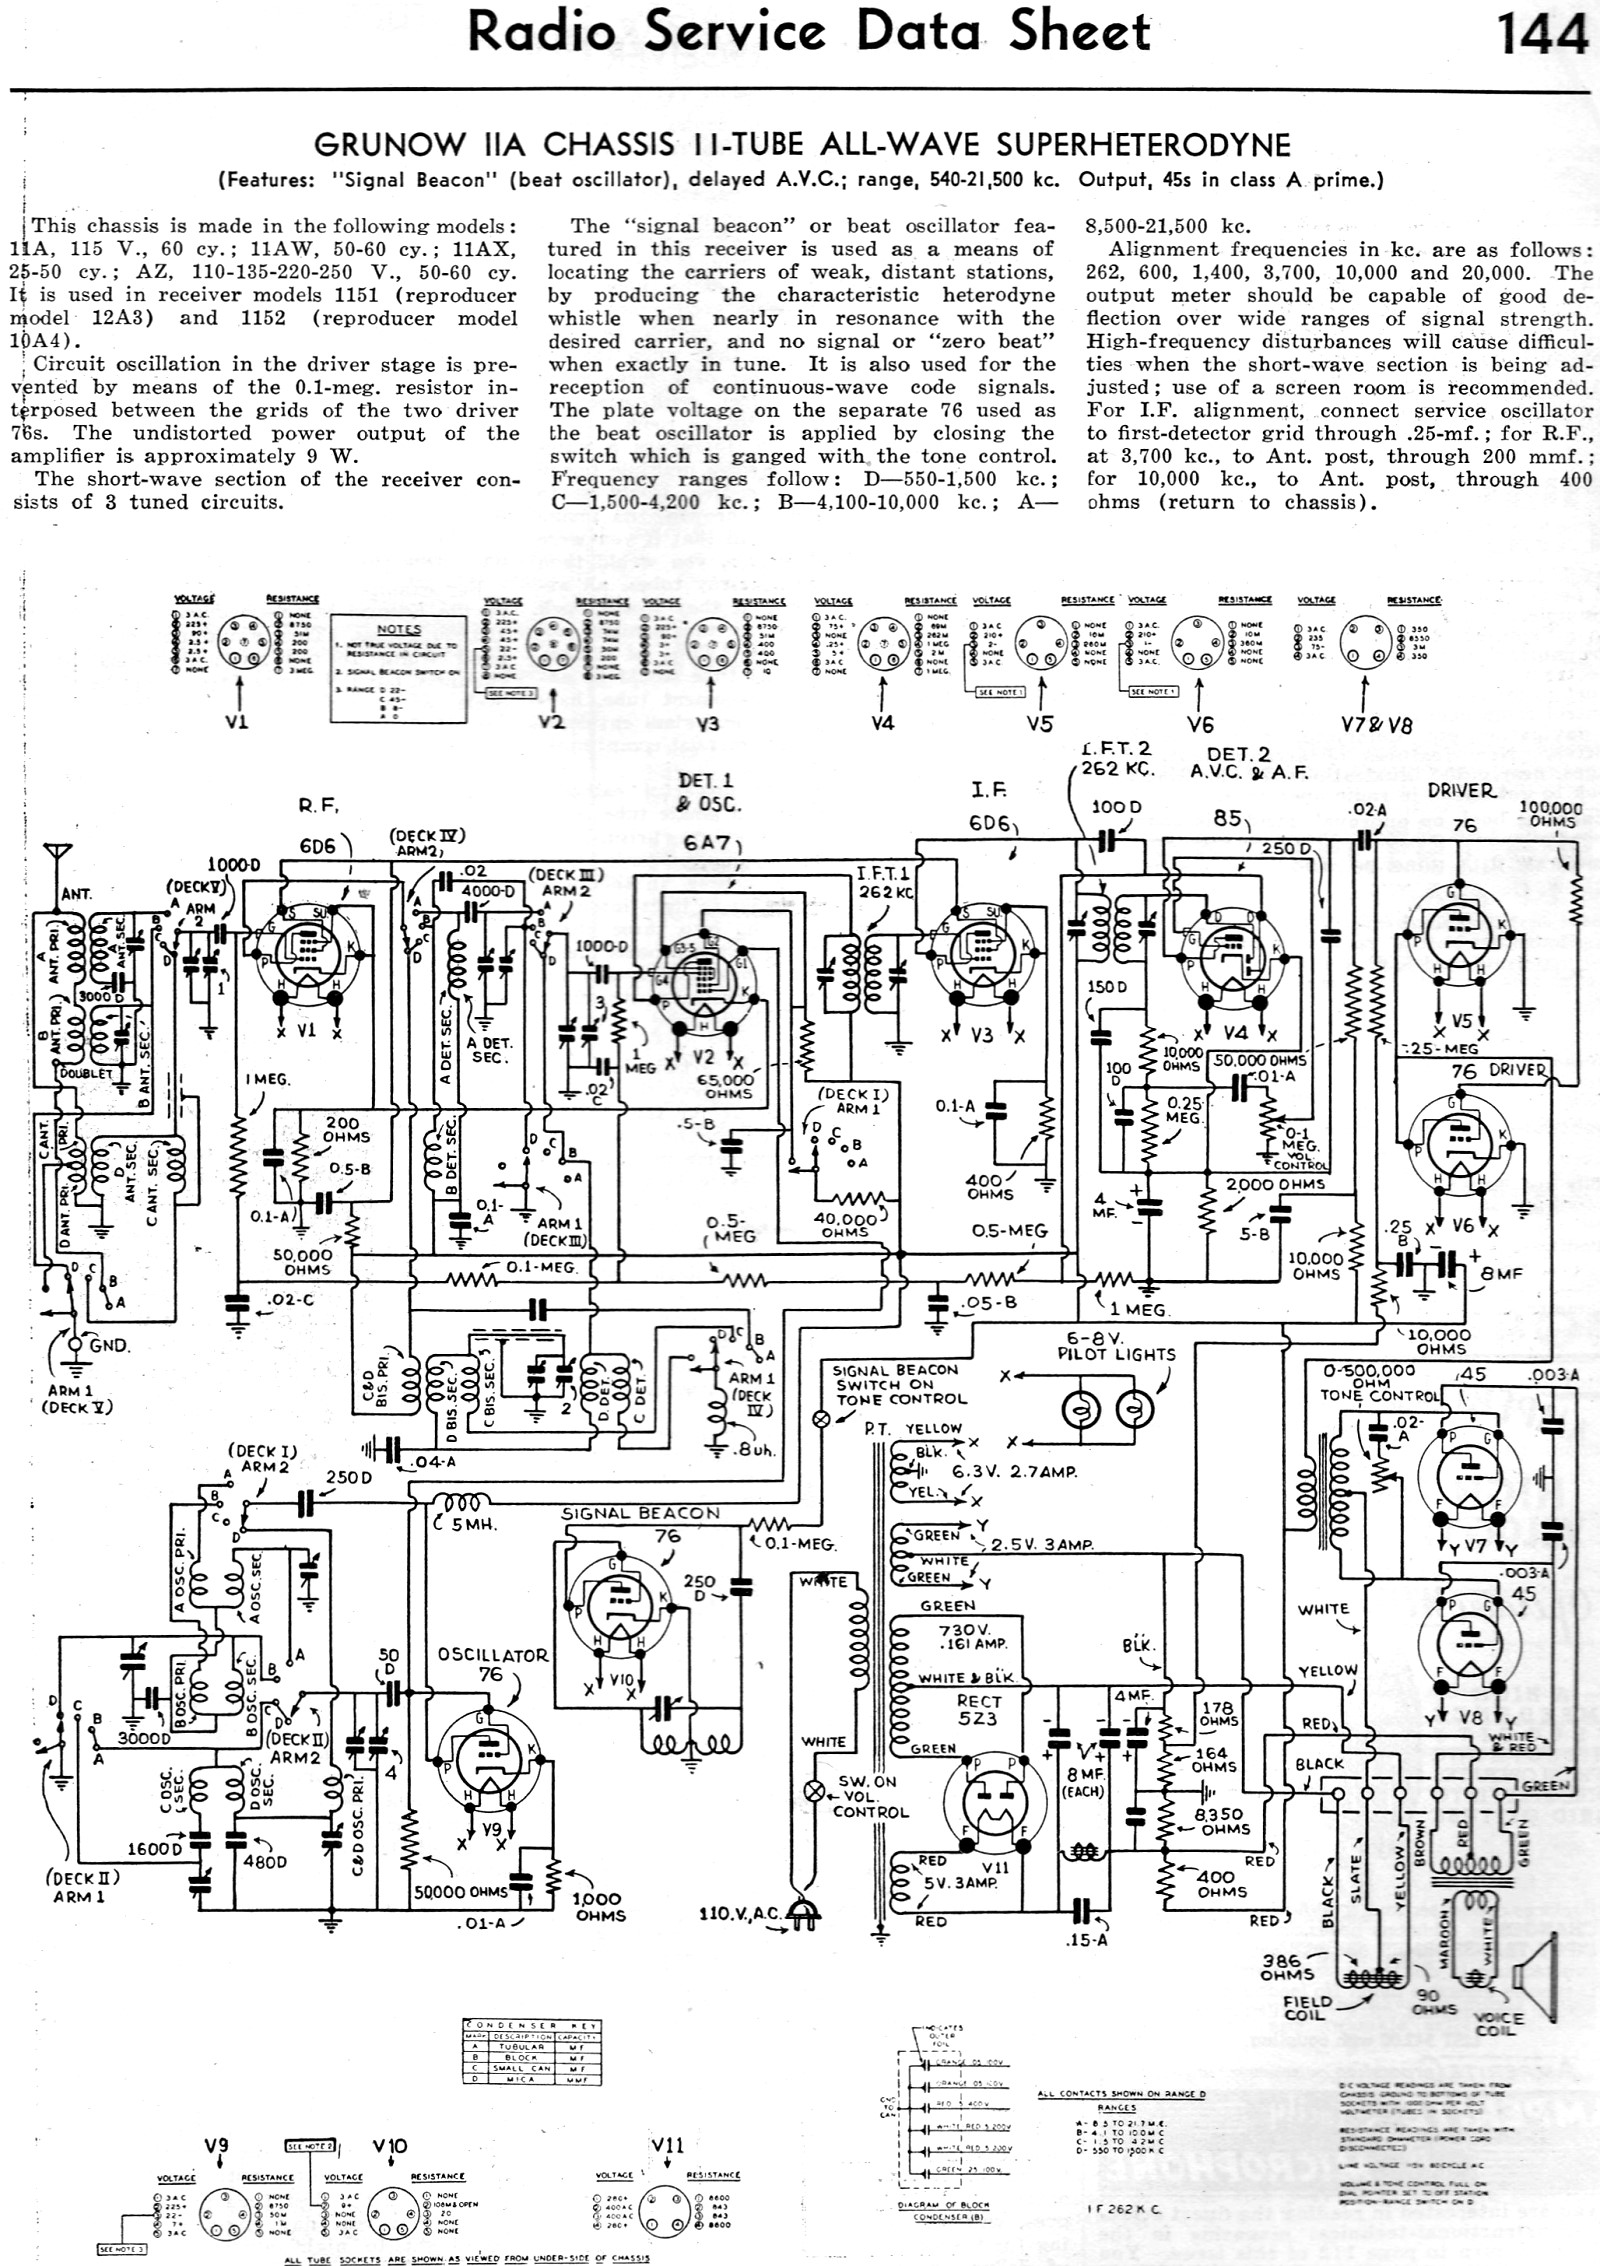 Hitch Harness Wiring Diagram 259993 moreover Grunow 11a Chassis Radio Craft August 1935 besides Cold War 2 0 Russia To Launch Nuclear Submarines Across Both North And South Poles together with Tube Radio Schematics besides 1955 Oldsmobile 98 Holiday Wiring Diagram. on admiral radio schematics